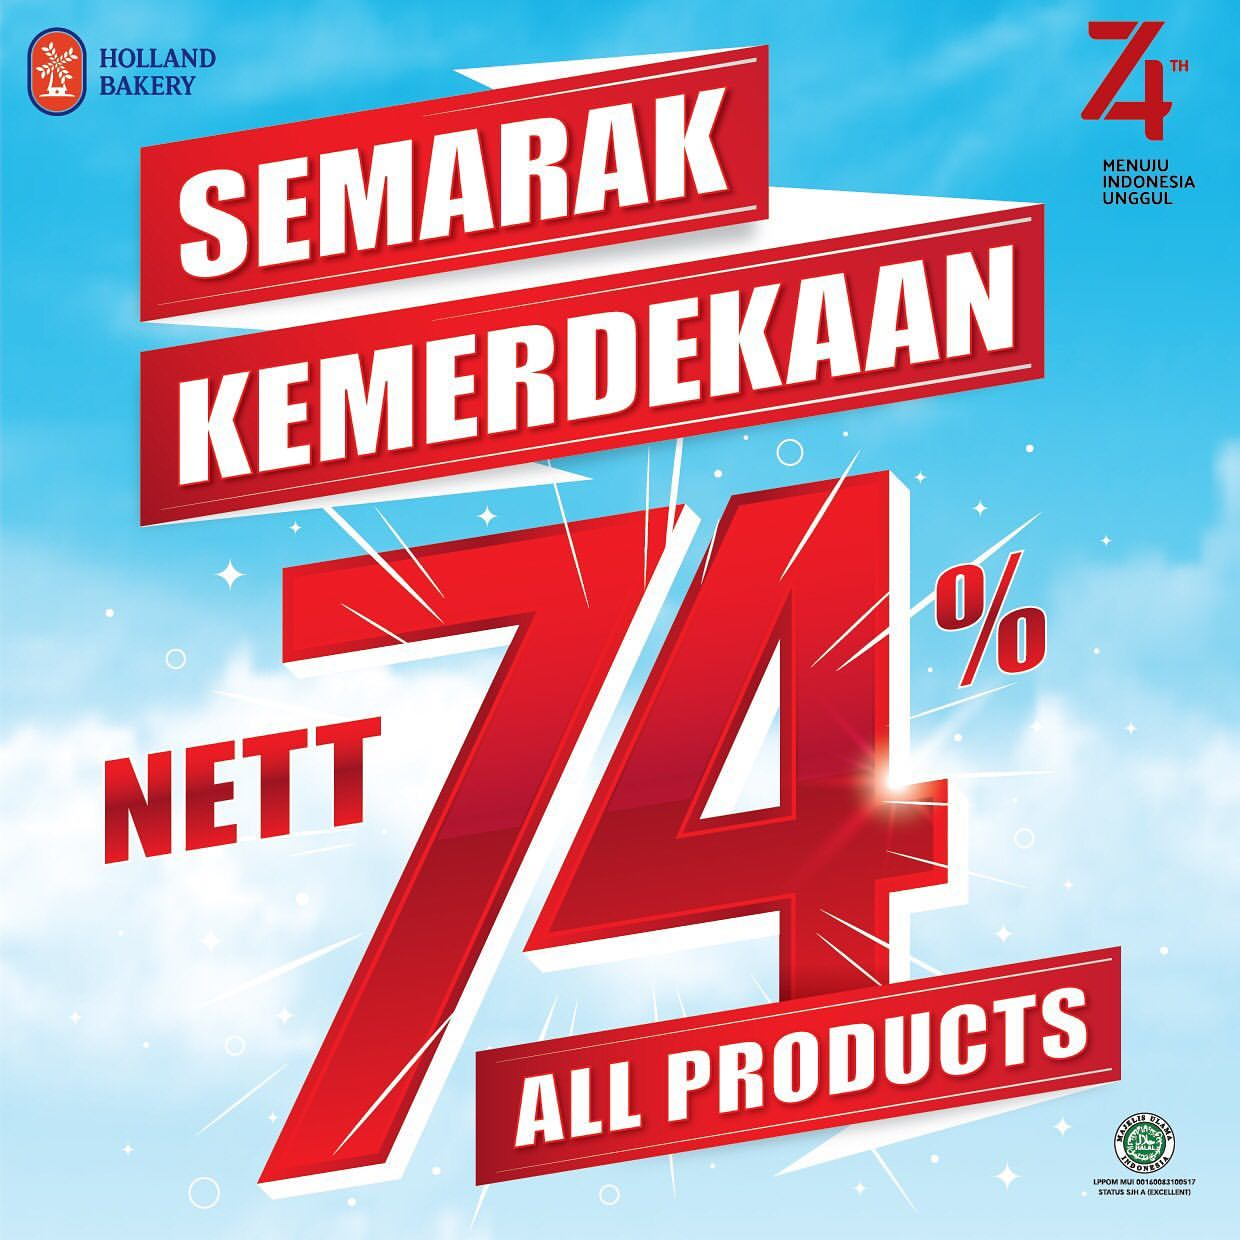 HOLLAND BAKERY Promo HUT RI Nett 74%